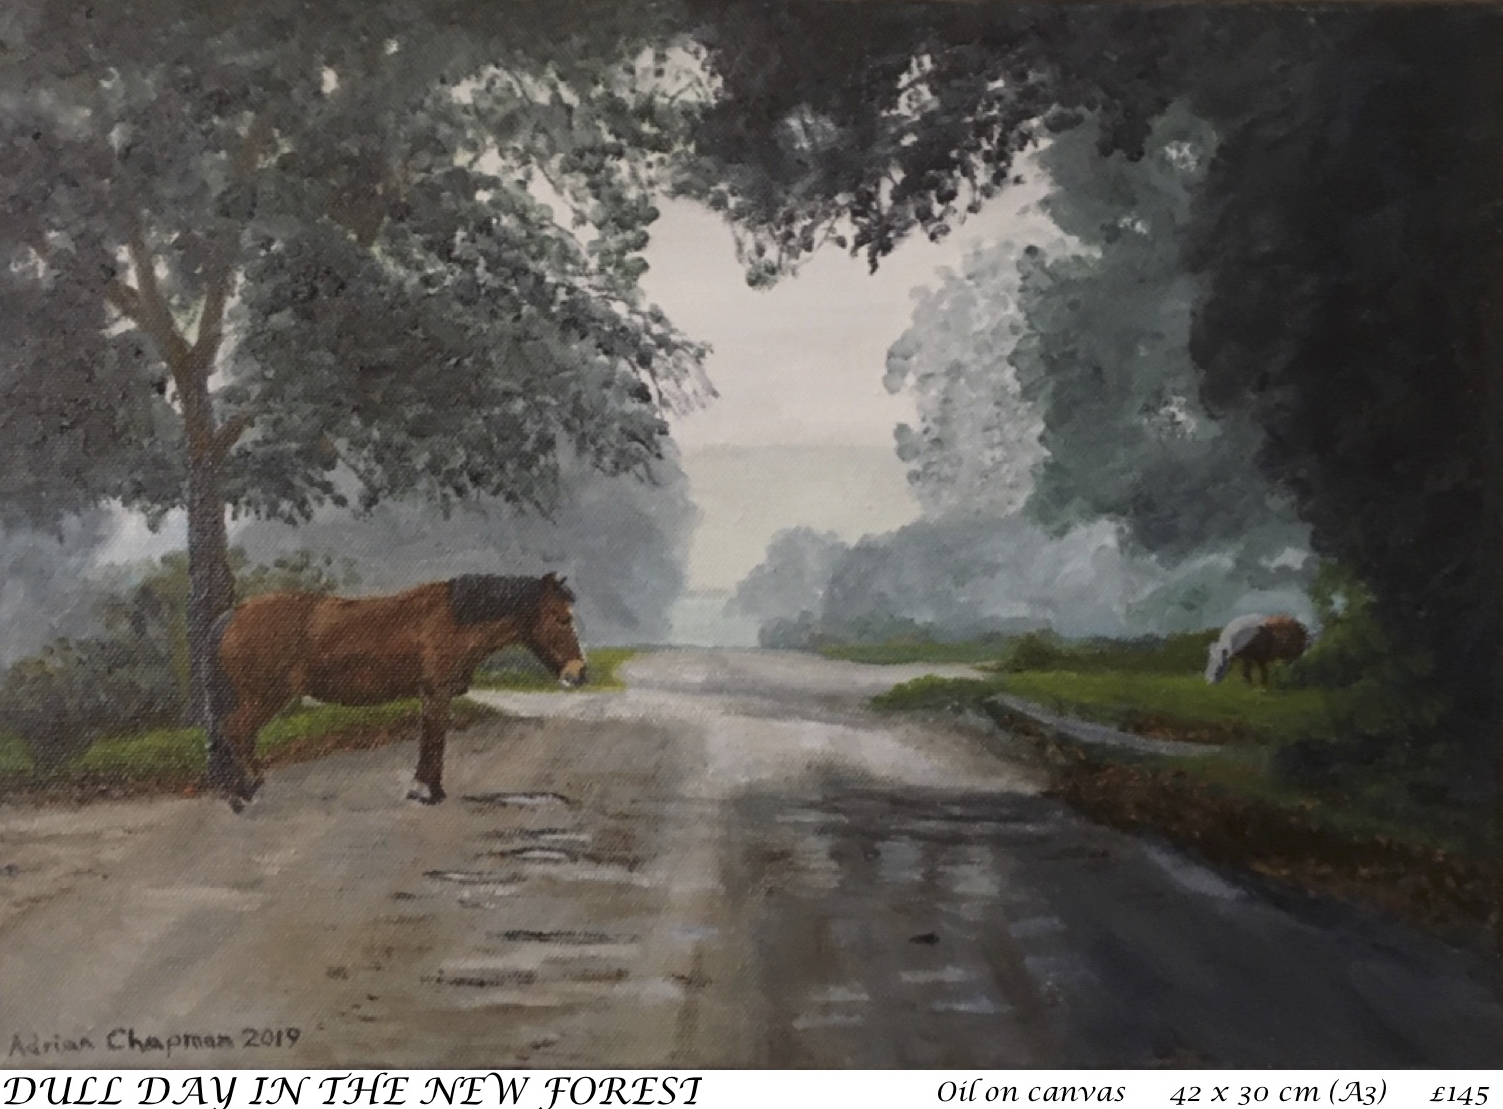 7. Dull Day in the New Forest